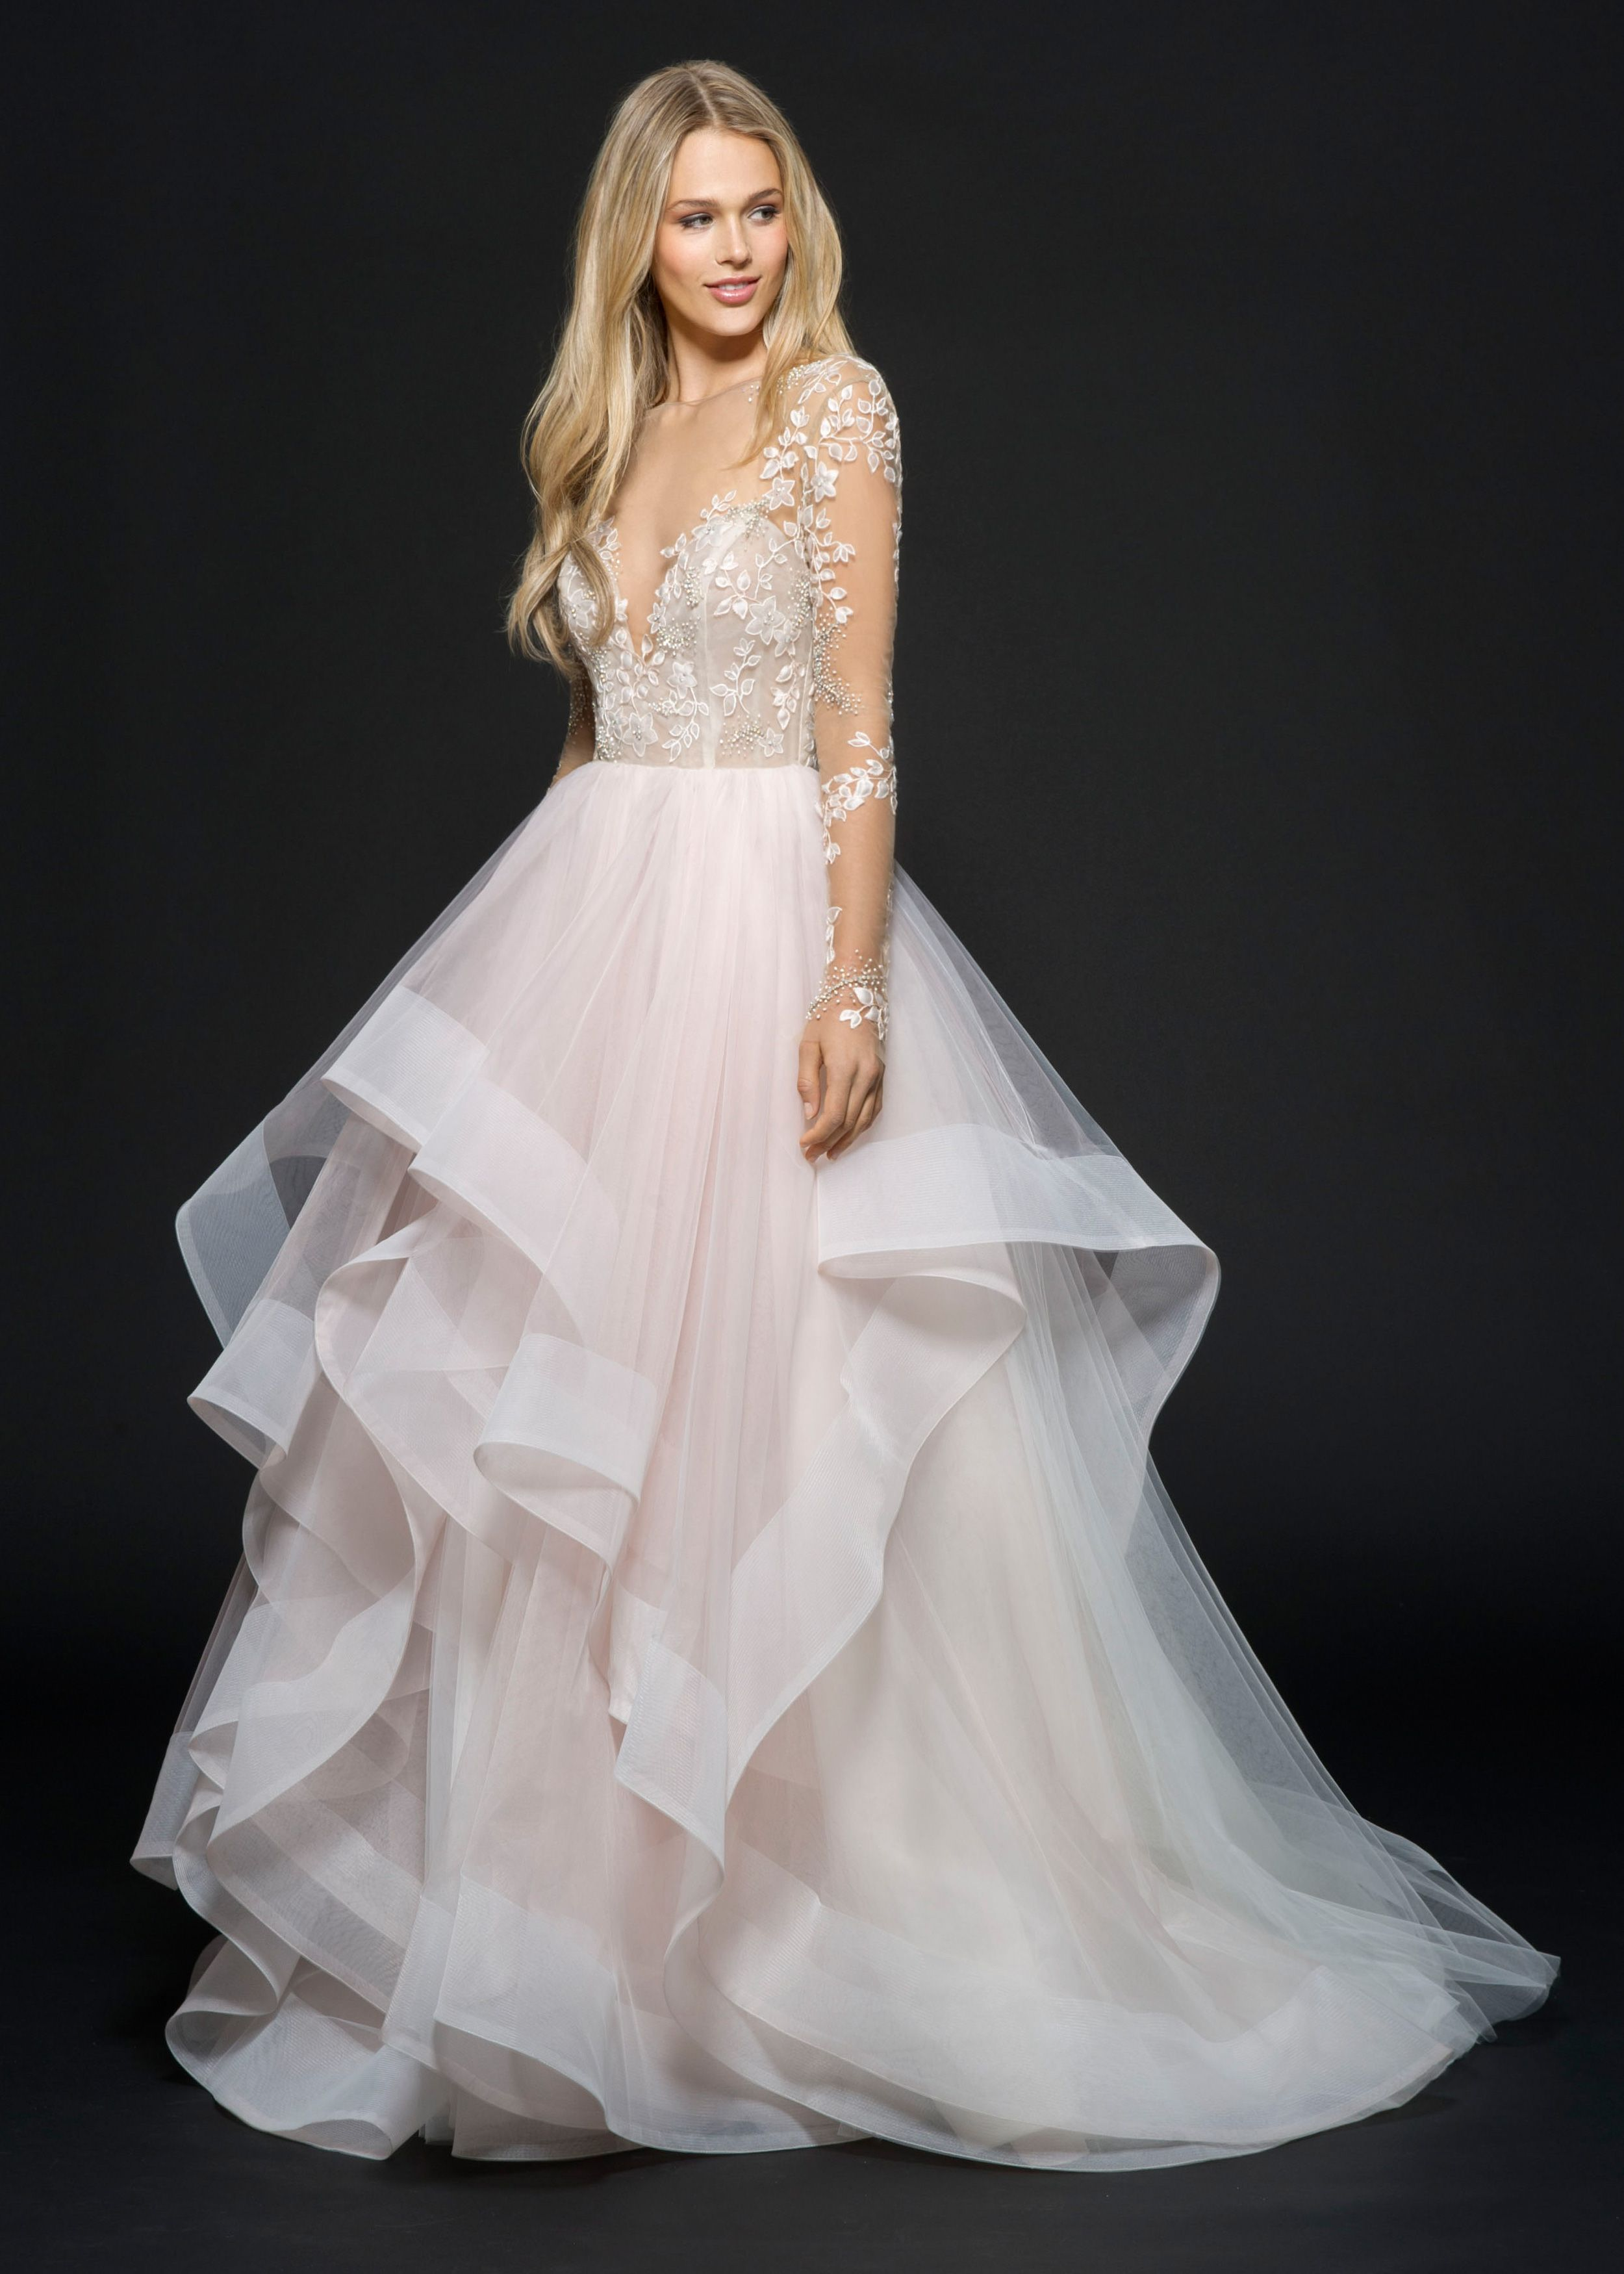 Hayley paige fall 2016 lorelei bridal gown bridal fashion find lorelei wedding dress by hayley paige available in 9 boutiques in canada blush bridal vancouver bliss bridal boutique winnipeg cameo cufflinks ombrellifo Images